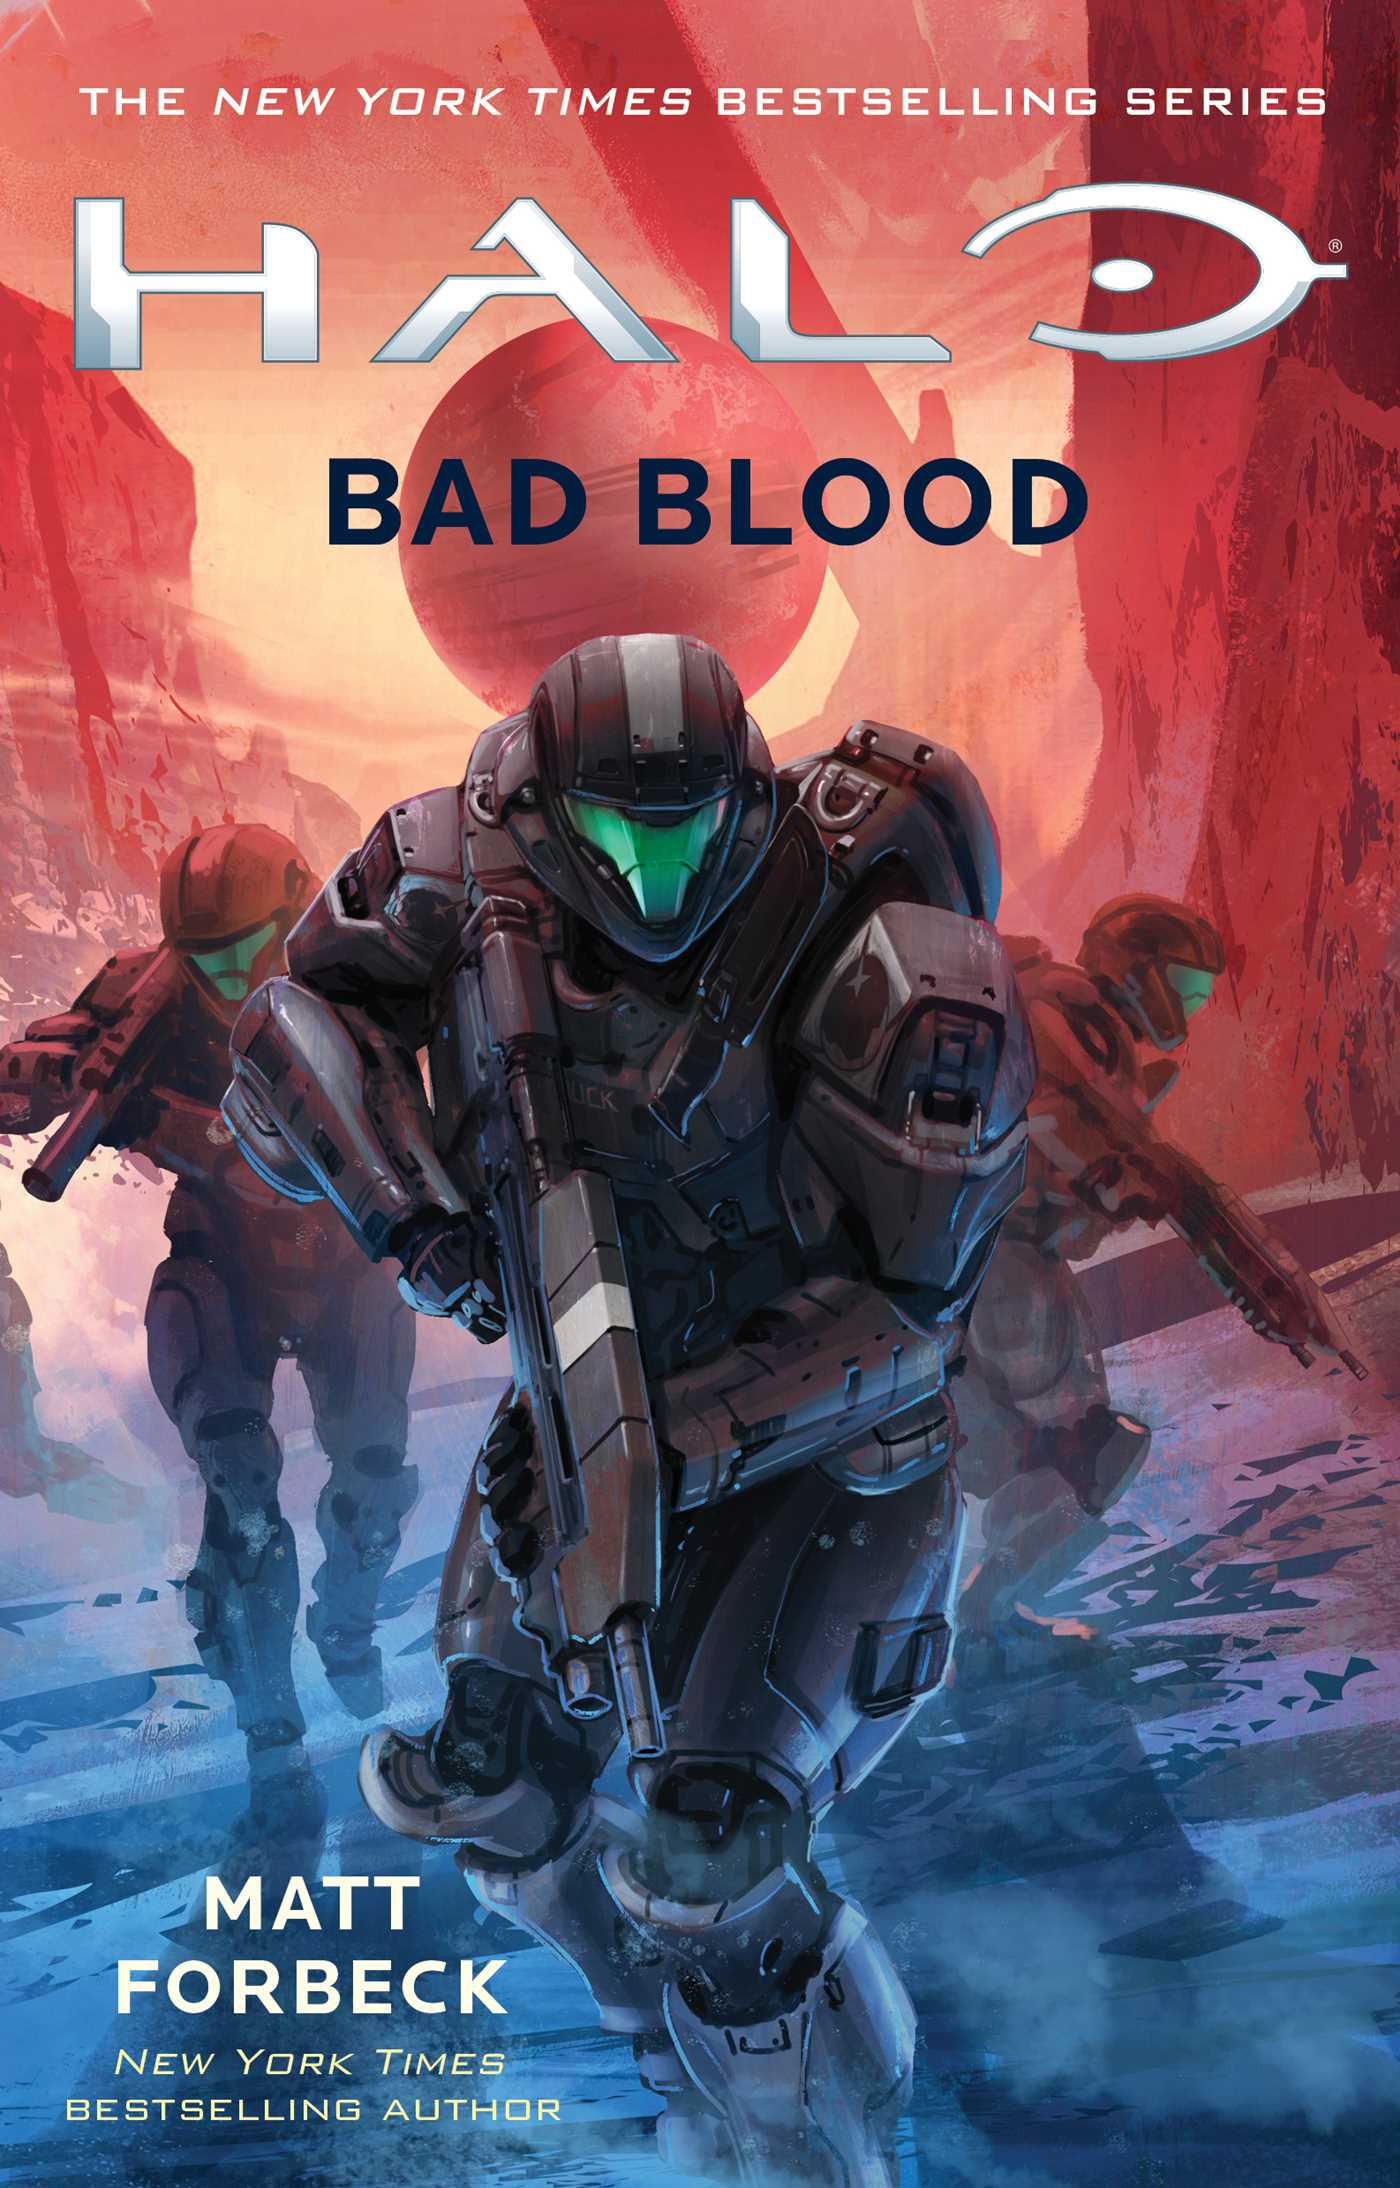 Halo bad blood 9781501128257 hr